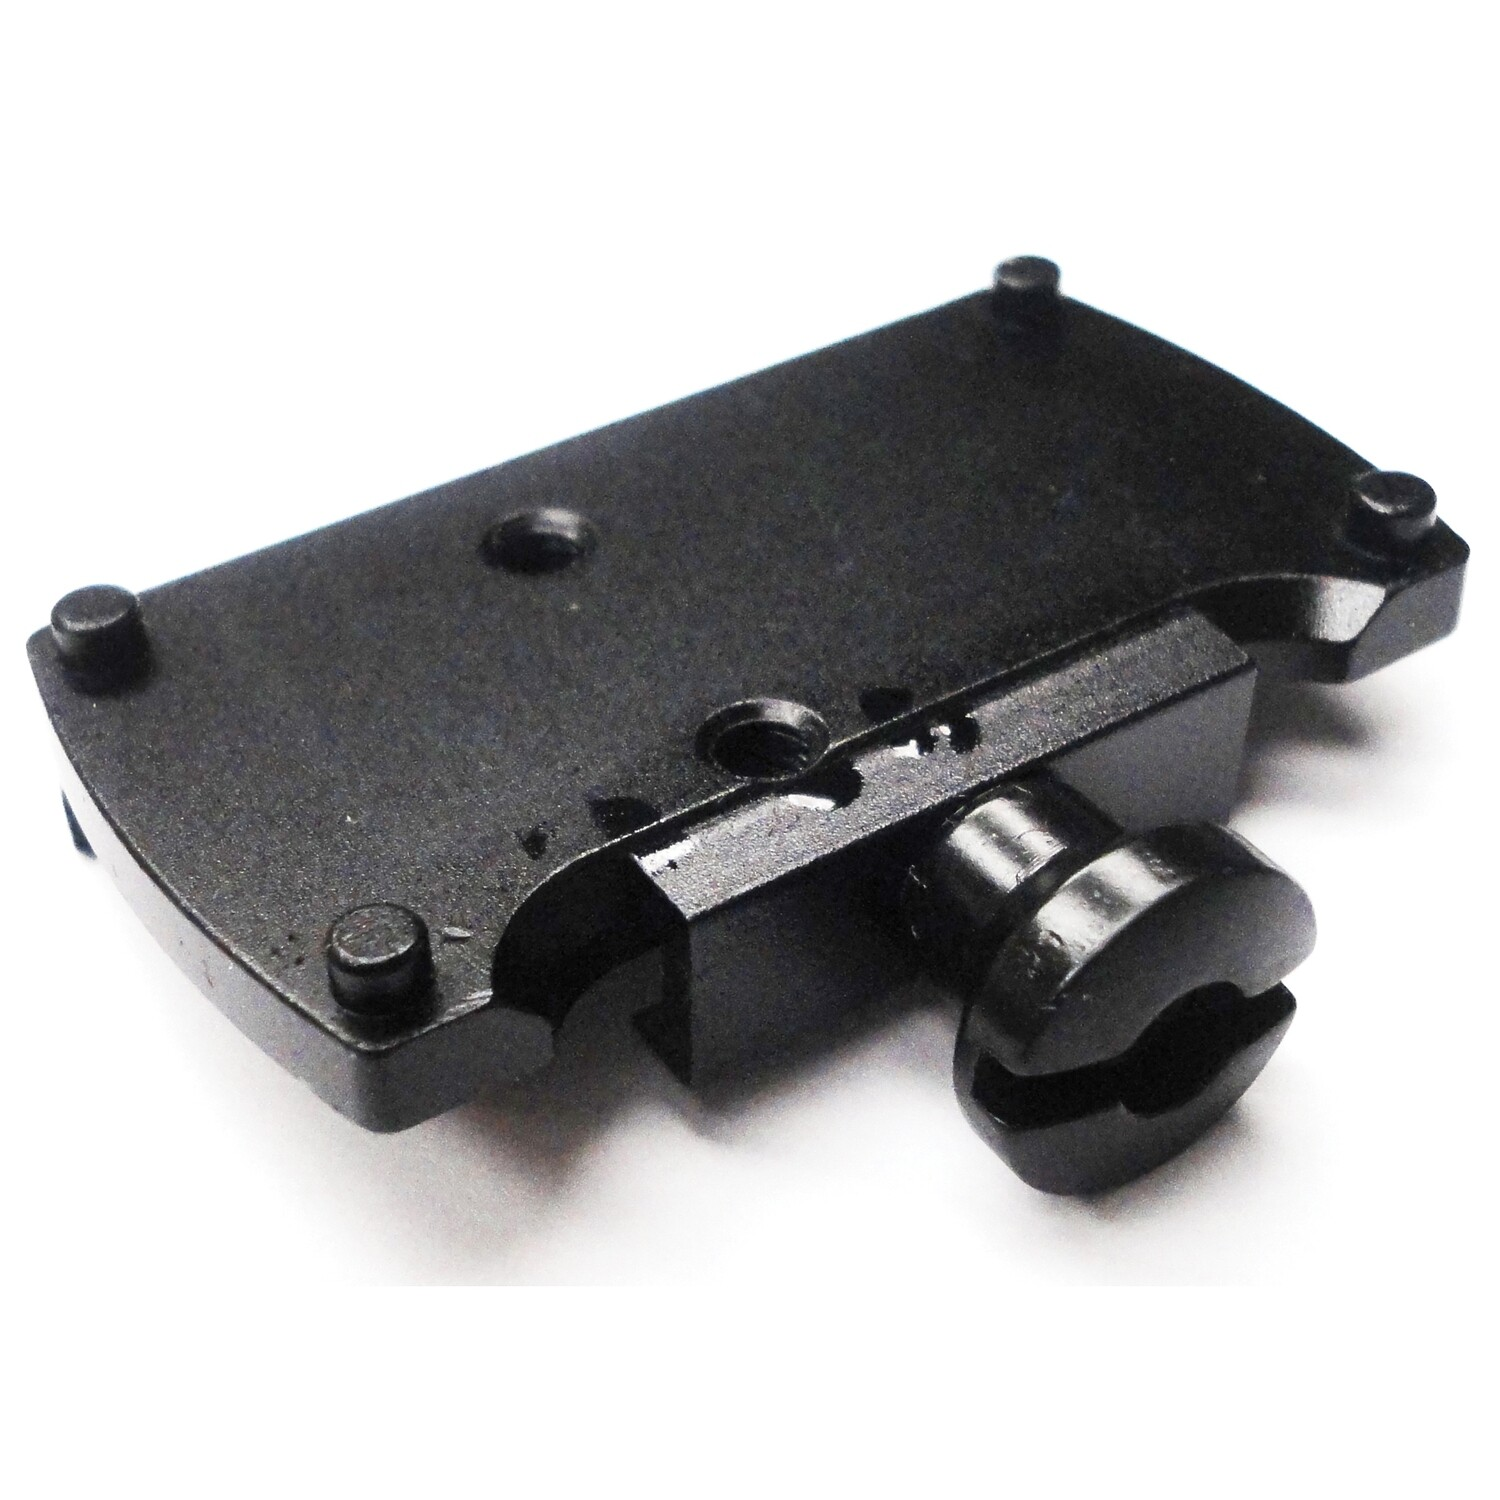 Burris FastFire Picatinny Mounting Plate